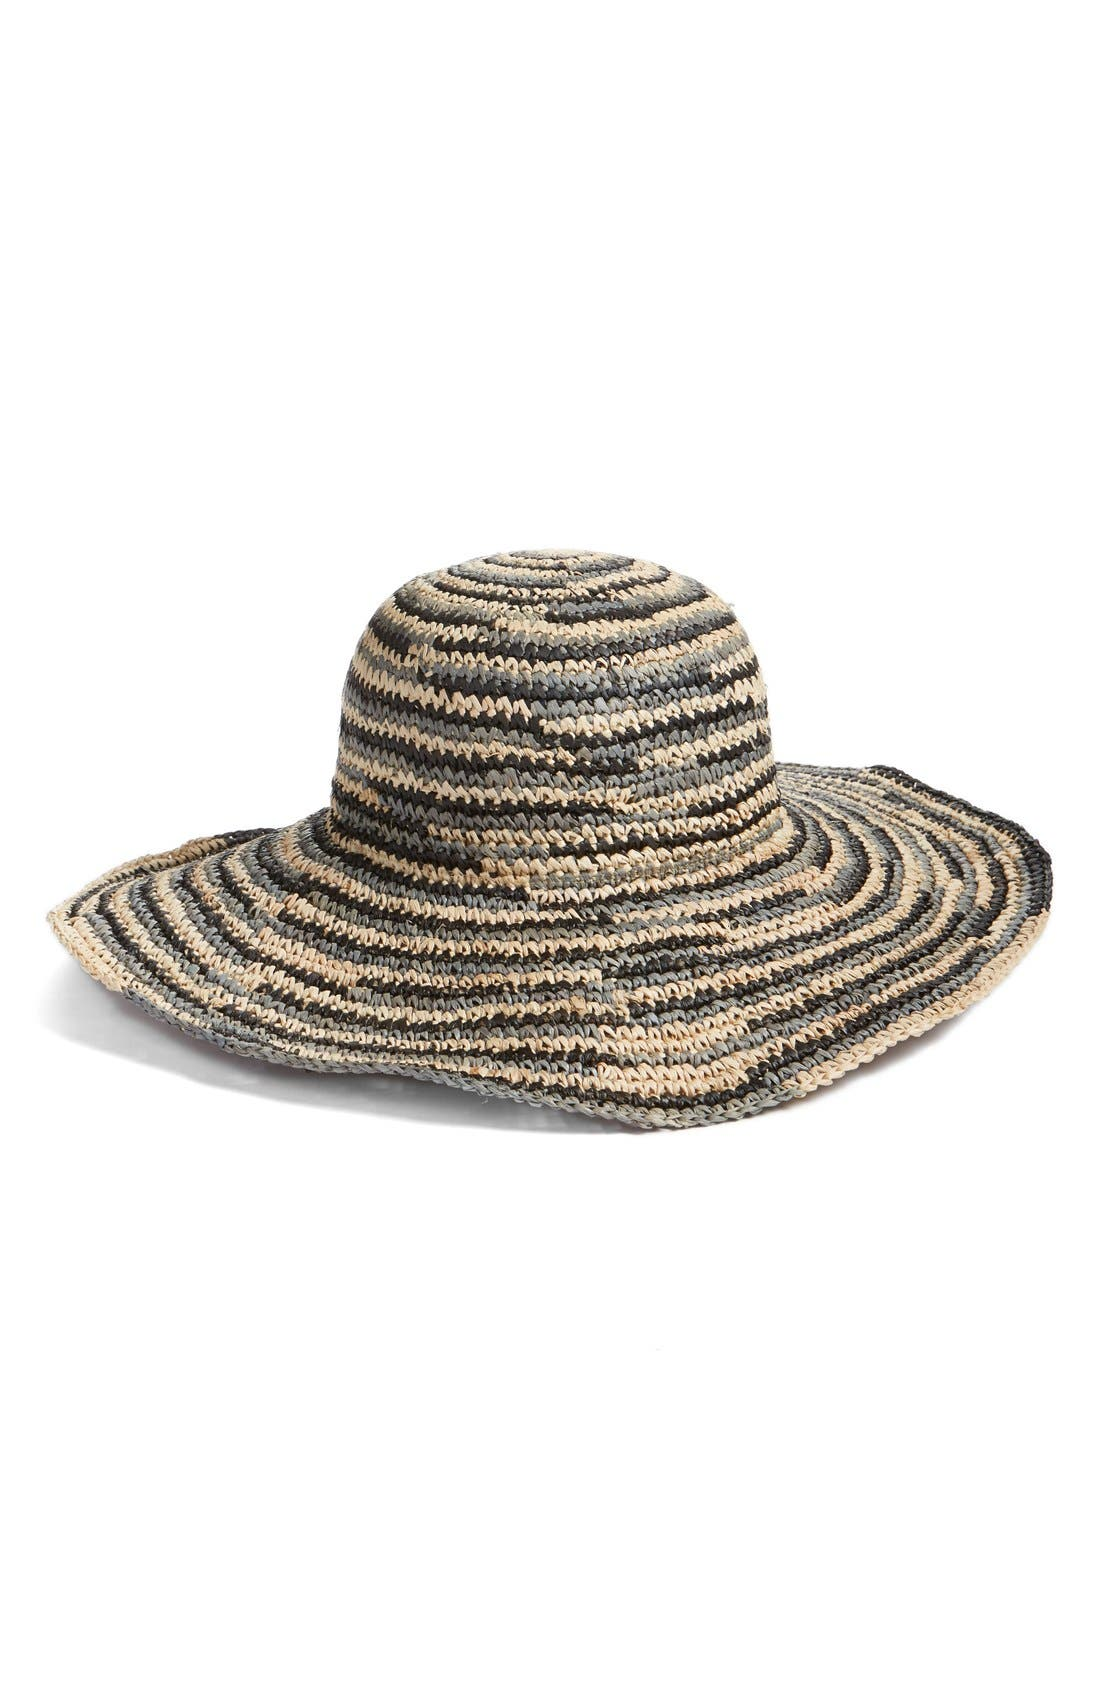 Alternate Image 1 Selected - Caslon® Raffia Floppy Brim Hat